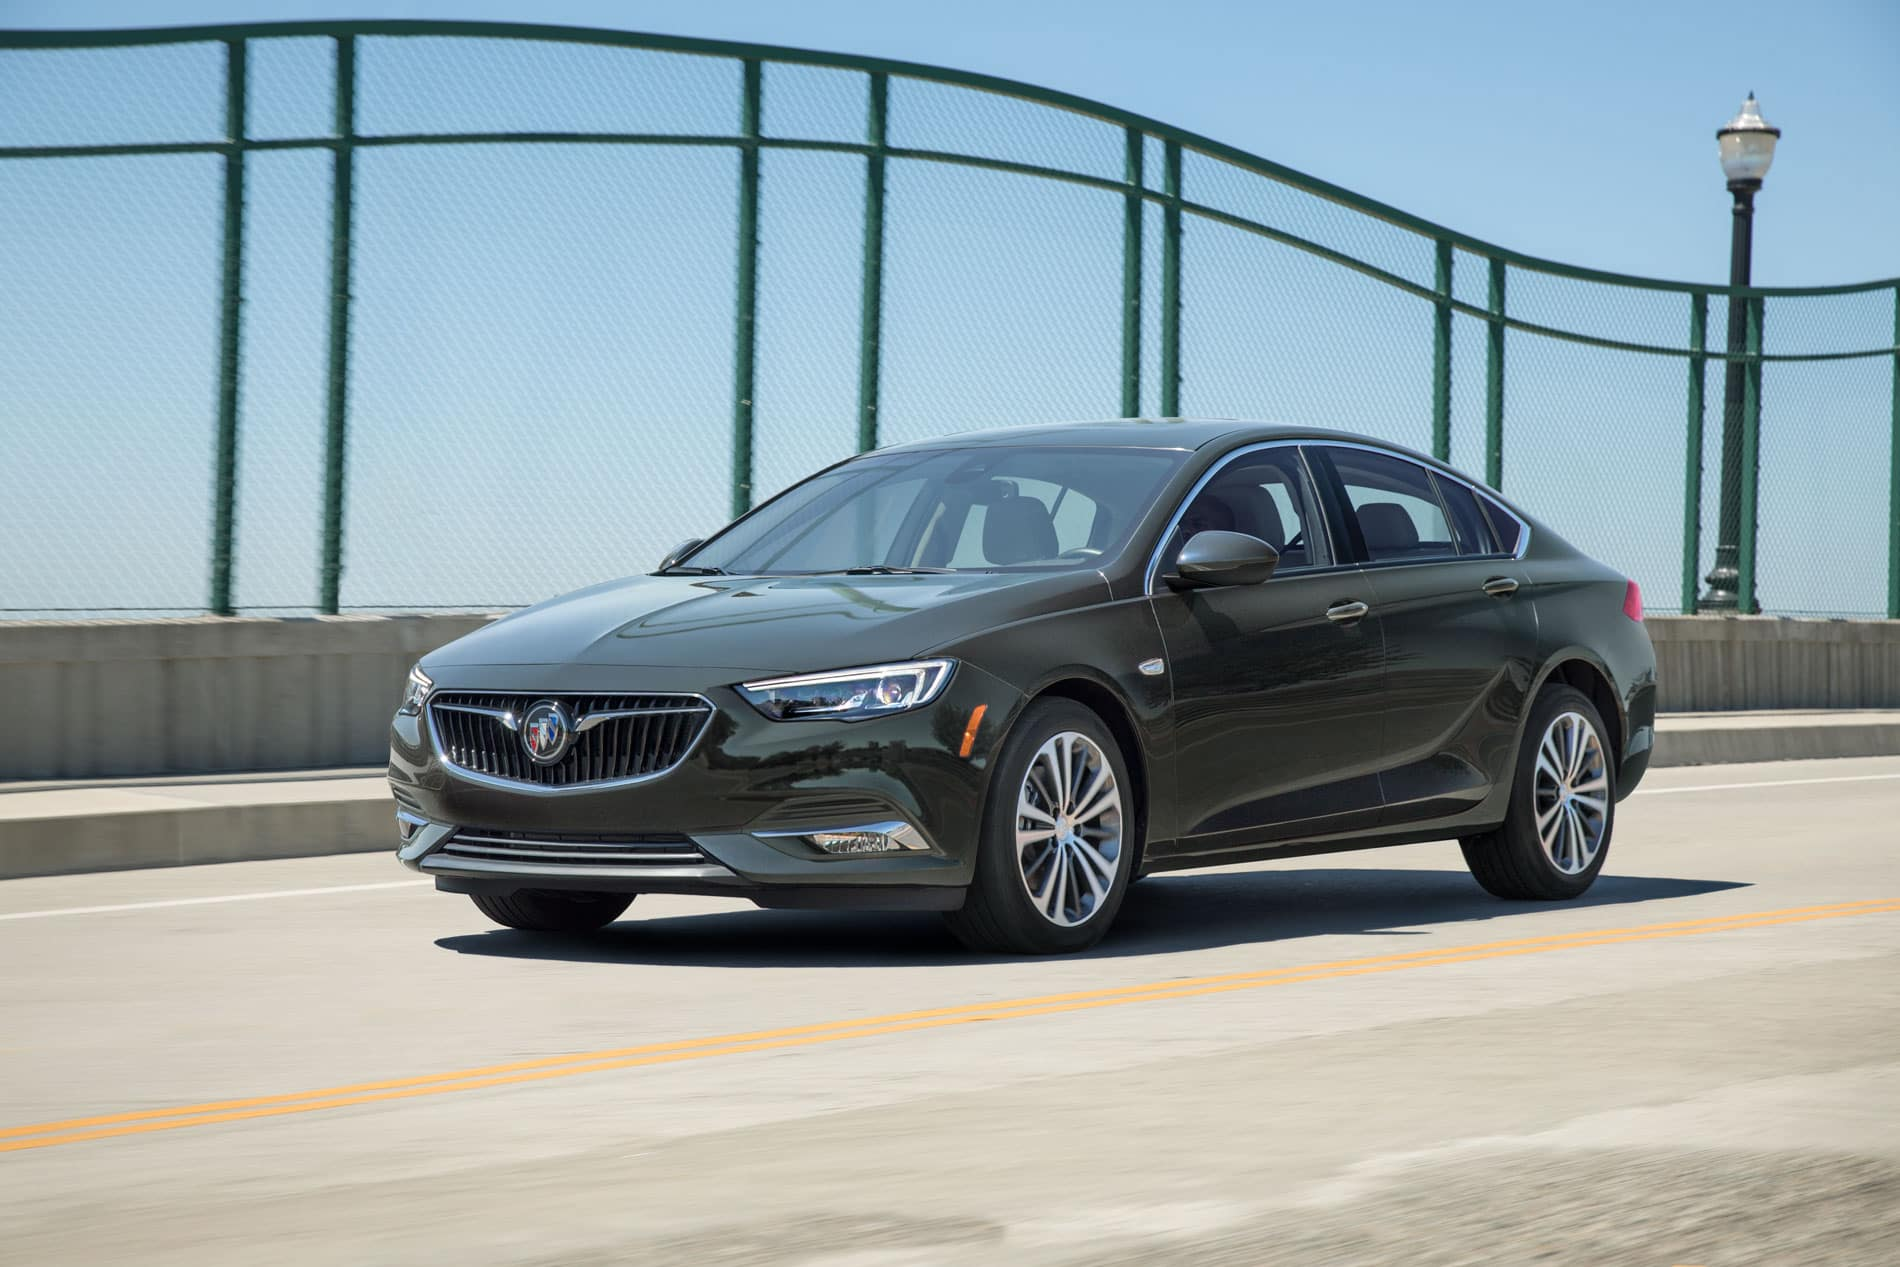 Buick Regal: Ride Control System Messages